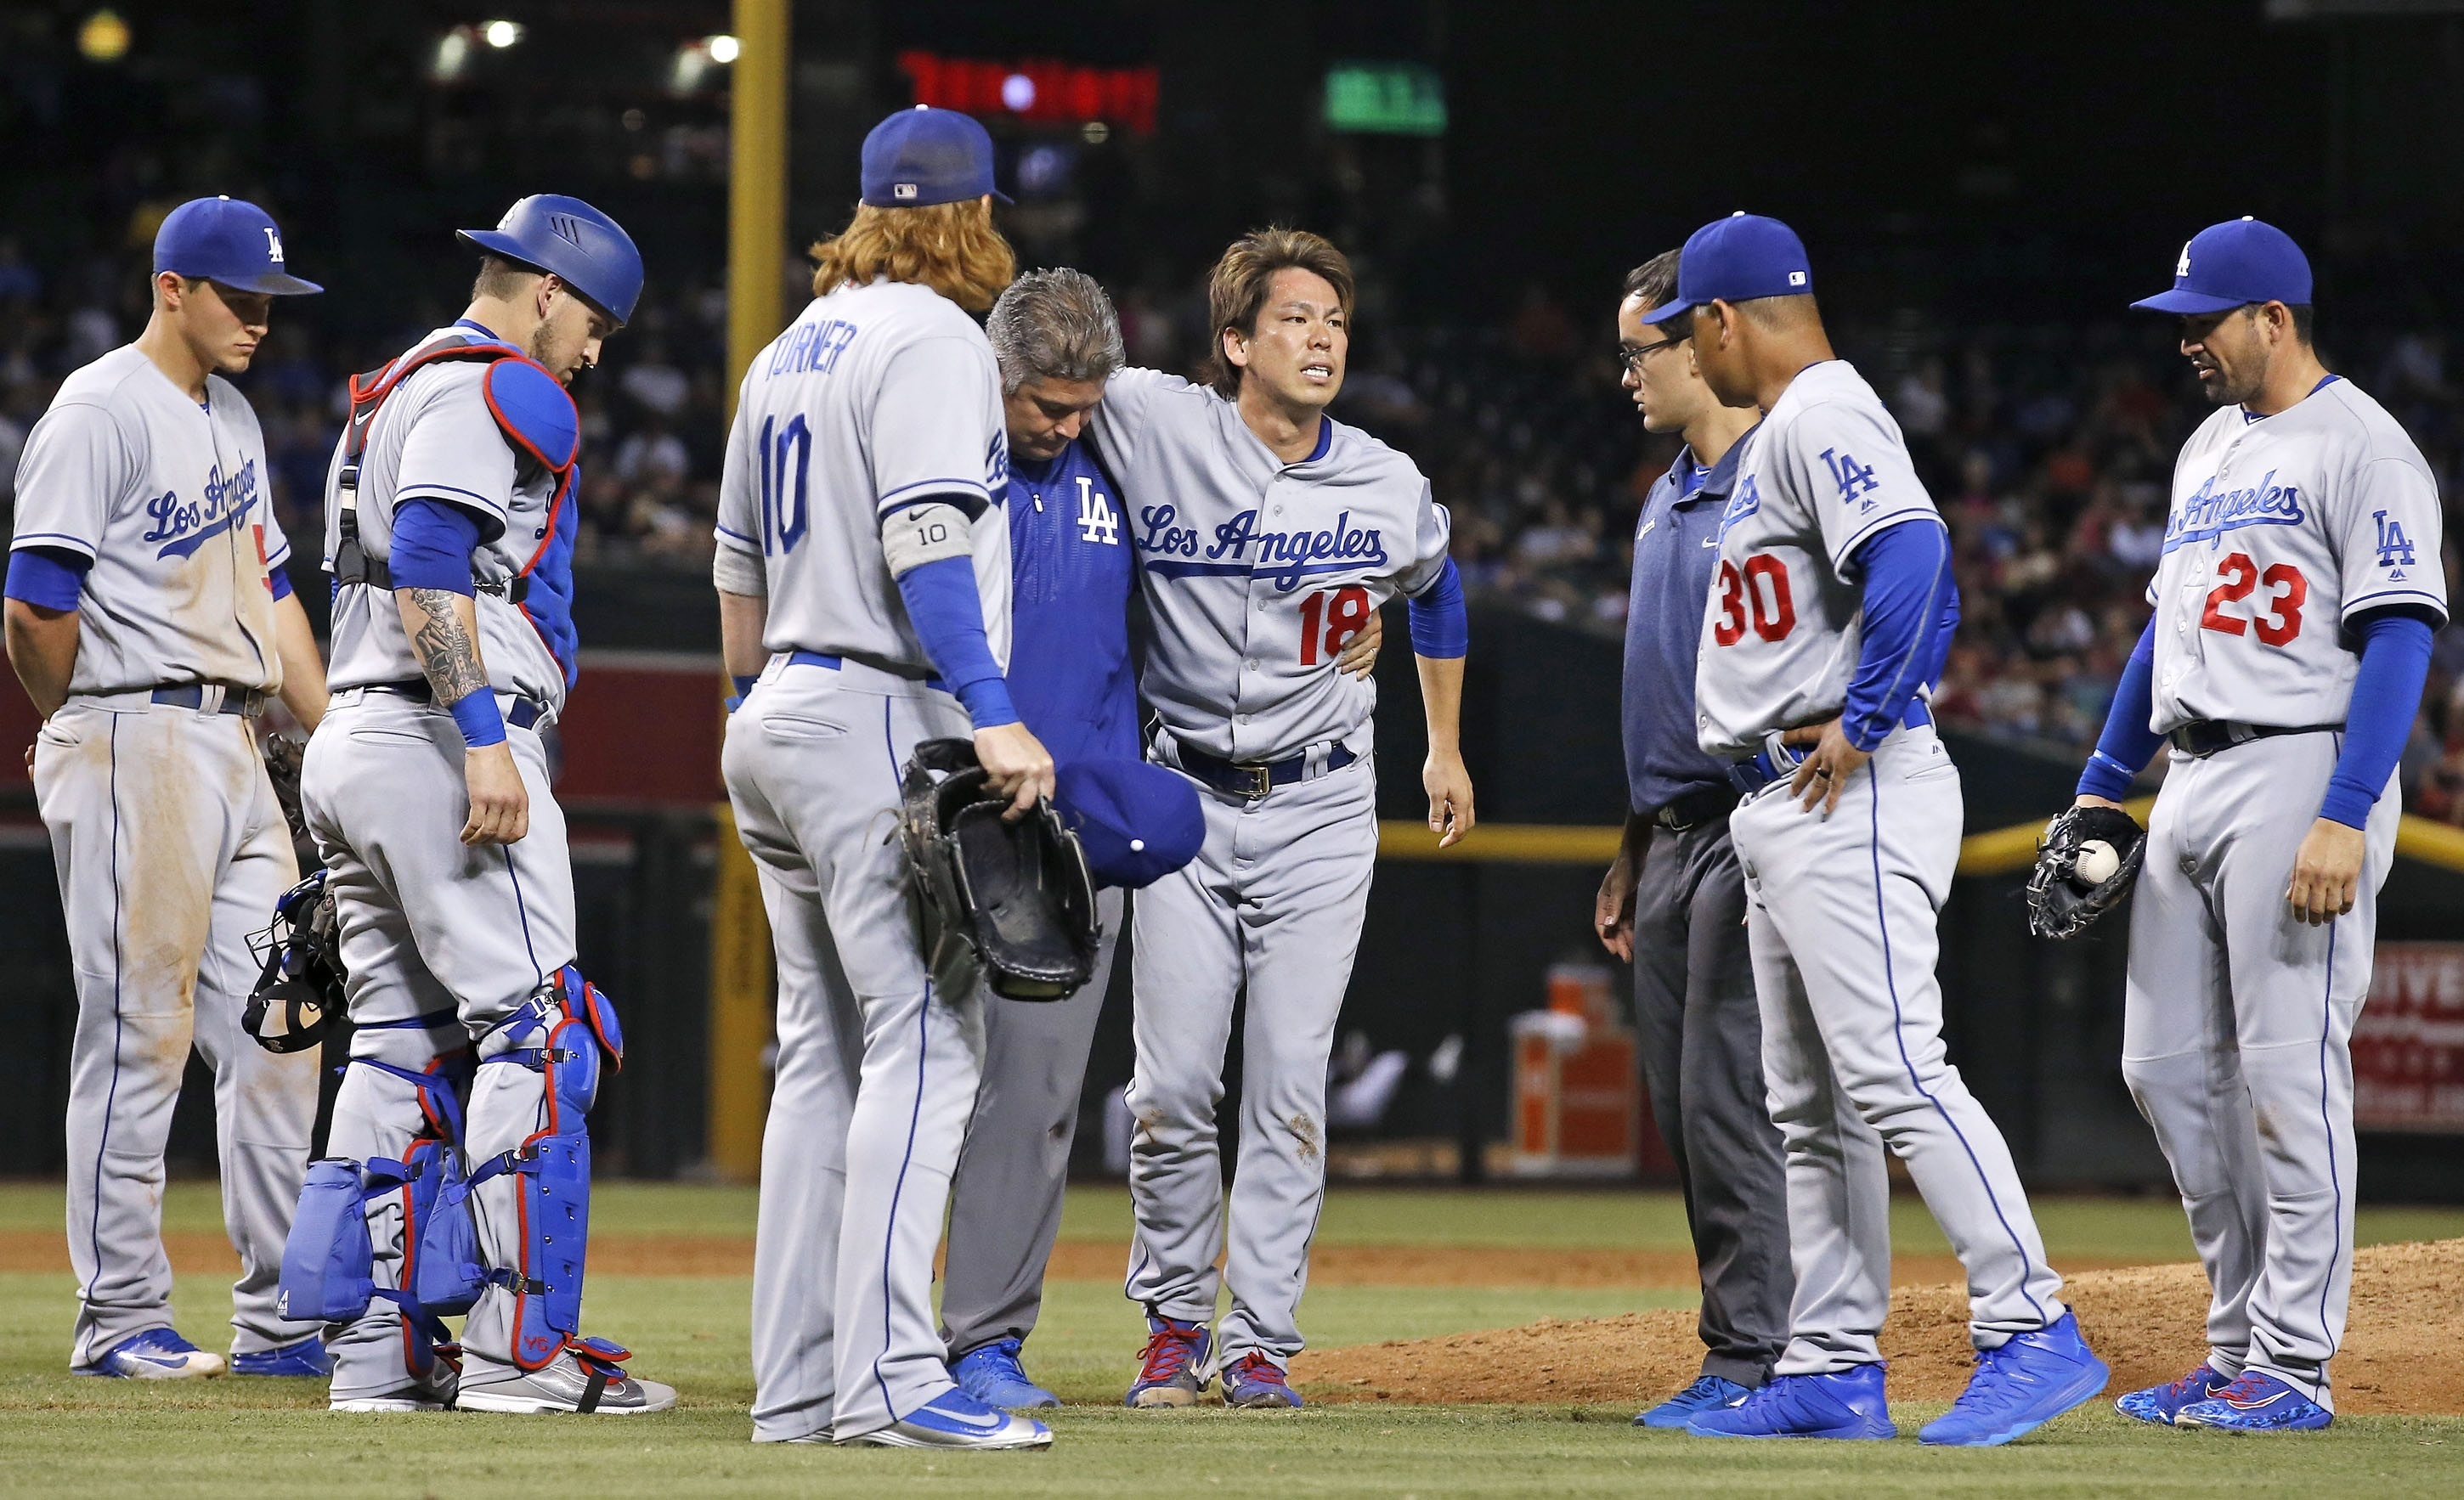 After being hit in the right leg by a batted ball from Arizona Diamondbacks' Paul Goldschmidt, Los Angeles Dodgers' Kenta Maeda (18) grimaces as he is helped off of the field by training staff as manager Dave Roberts (30), Adrian Gonzalez (23), Justin Tur